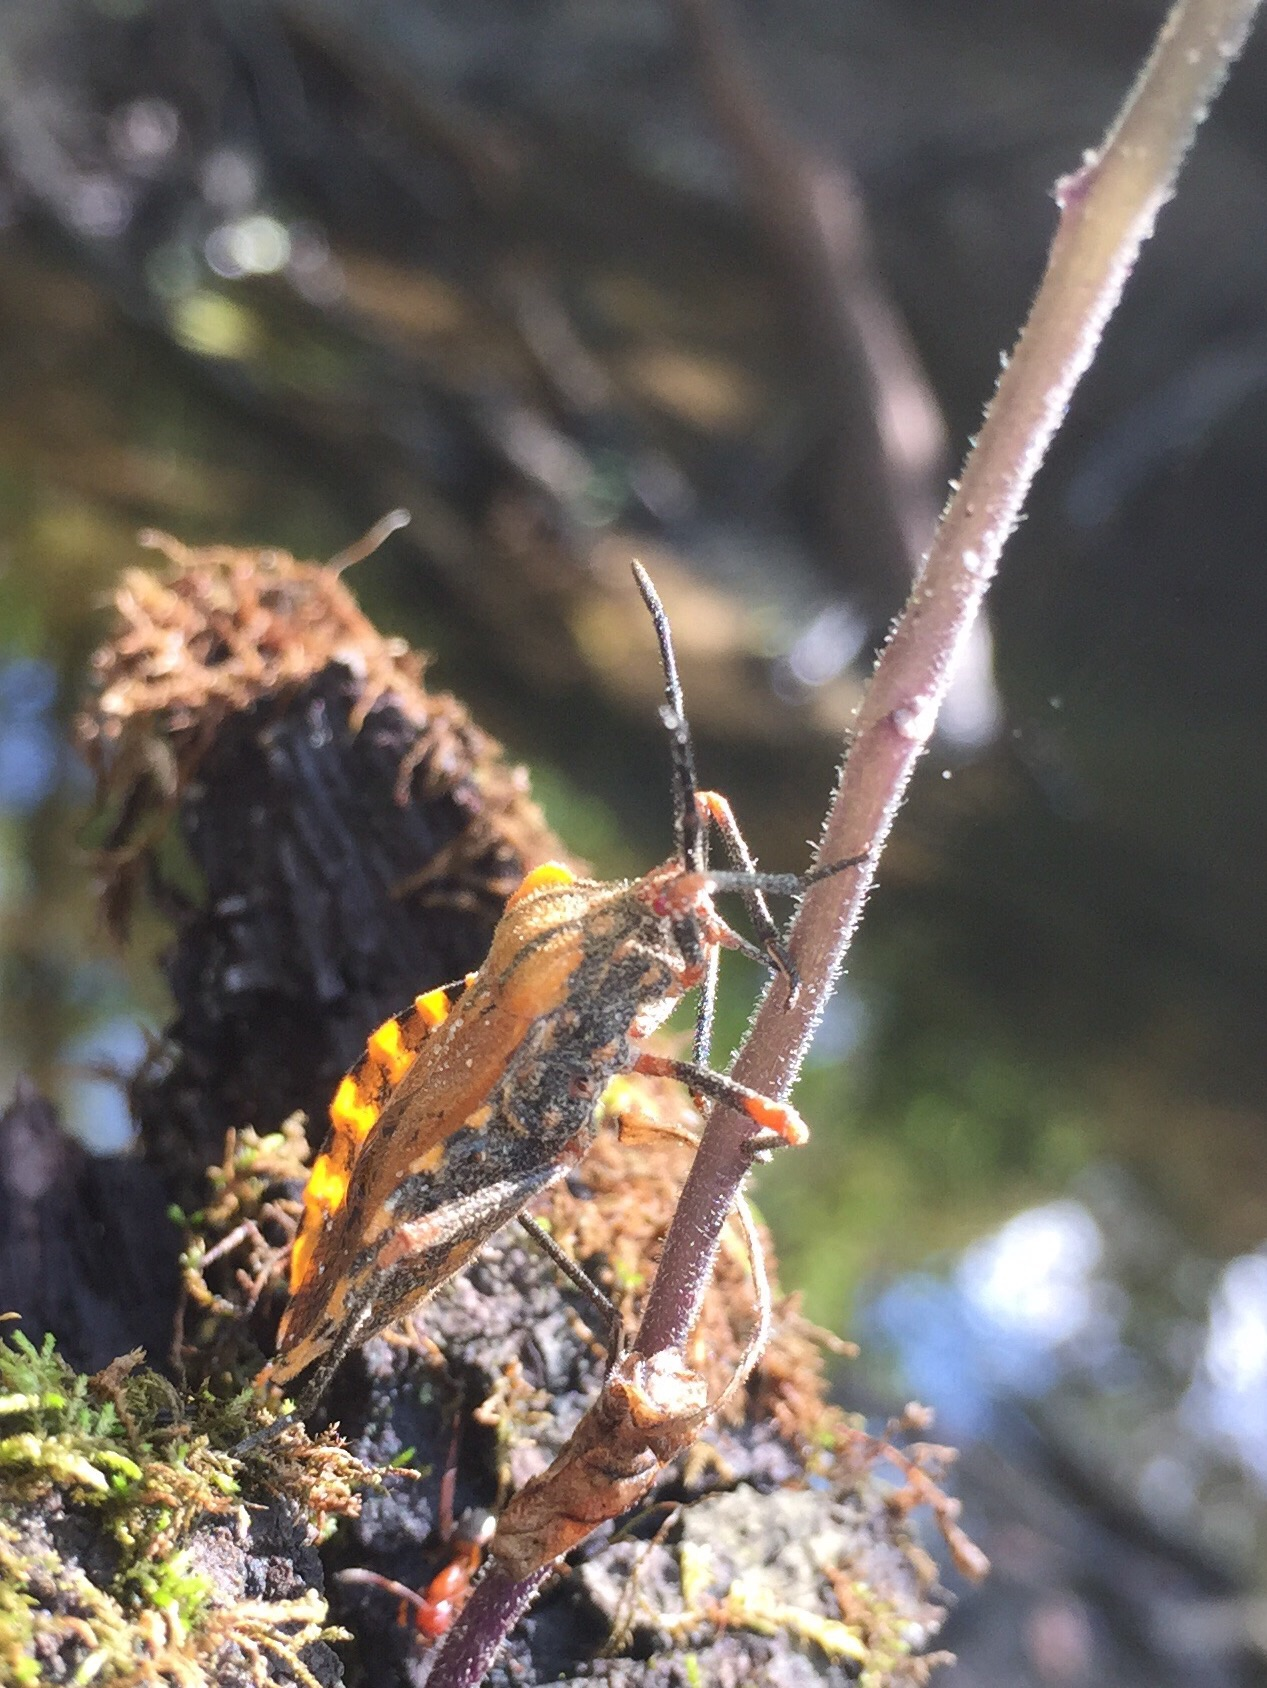 Unidentified insect using its proboscis to extract juice from the stem of a plant.